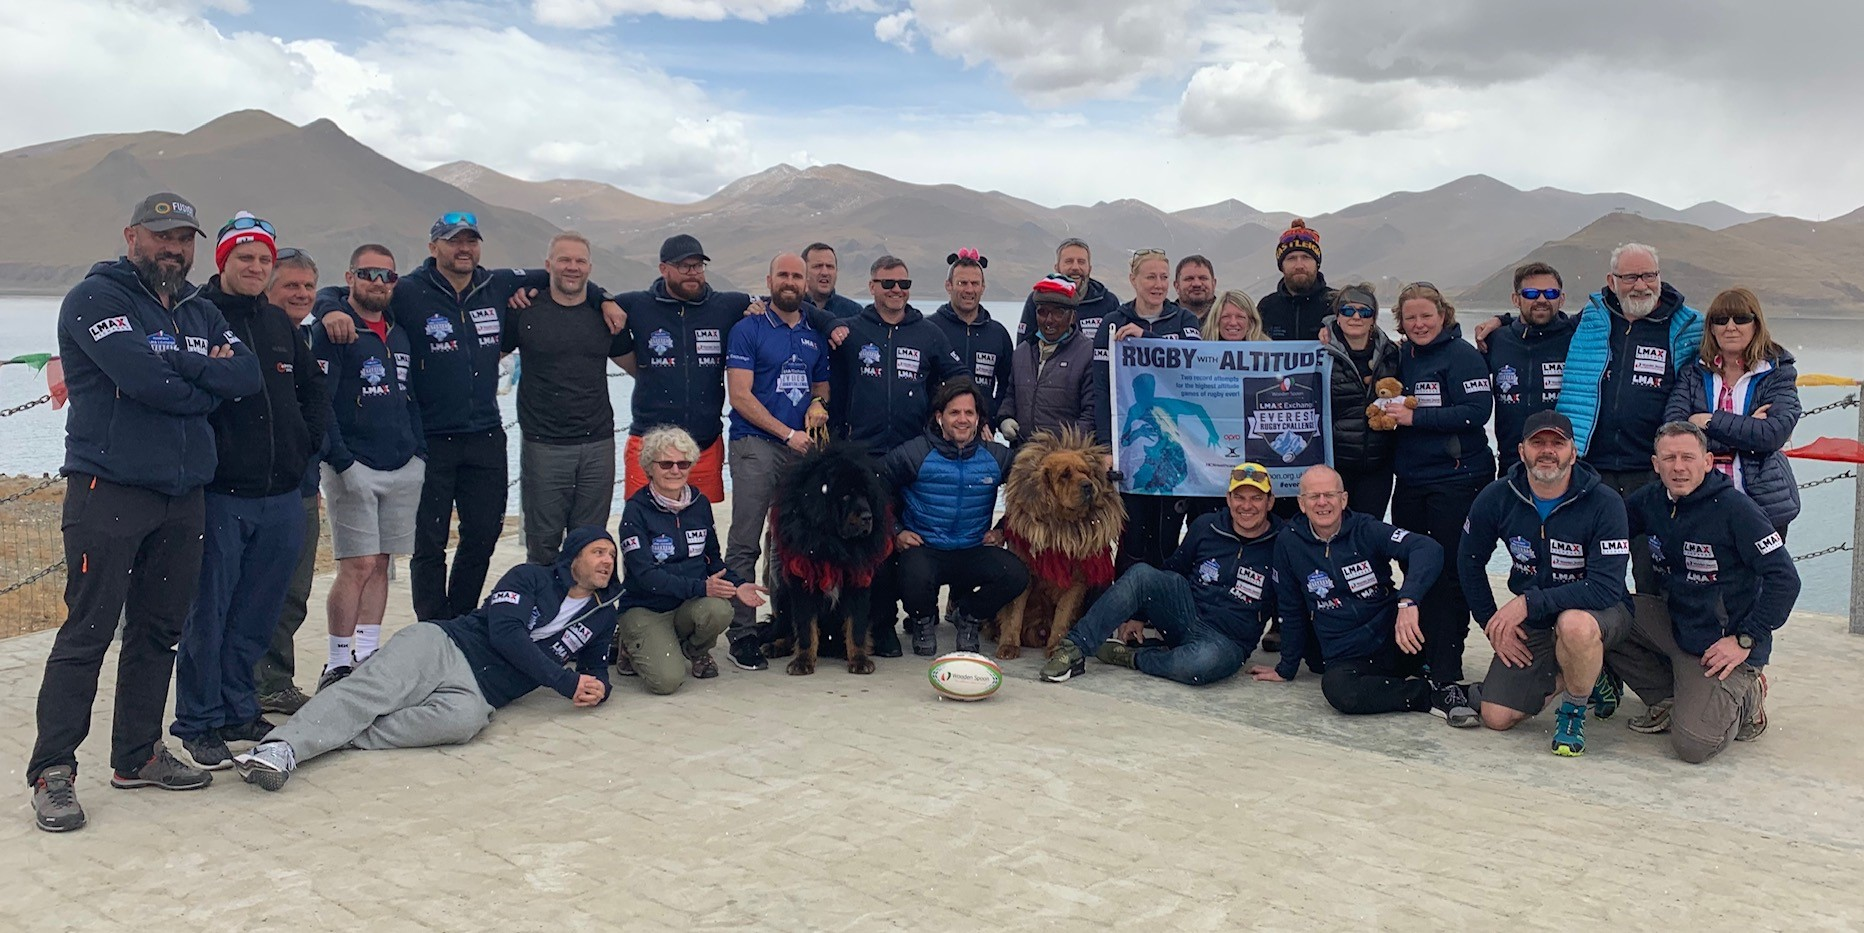 LMAX Rugby Challenge rugby team is posing in a group photo in Tibetan plateau and highlands.